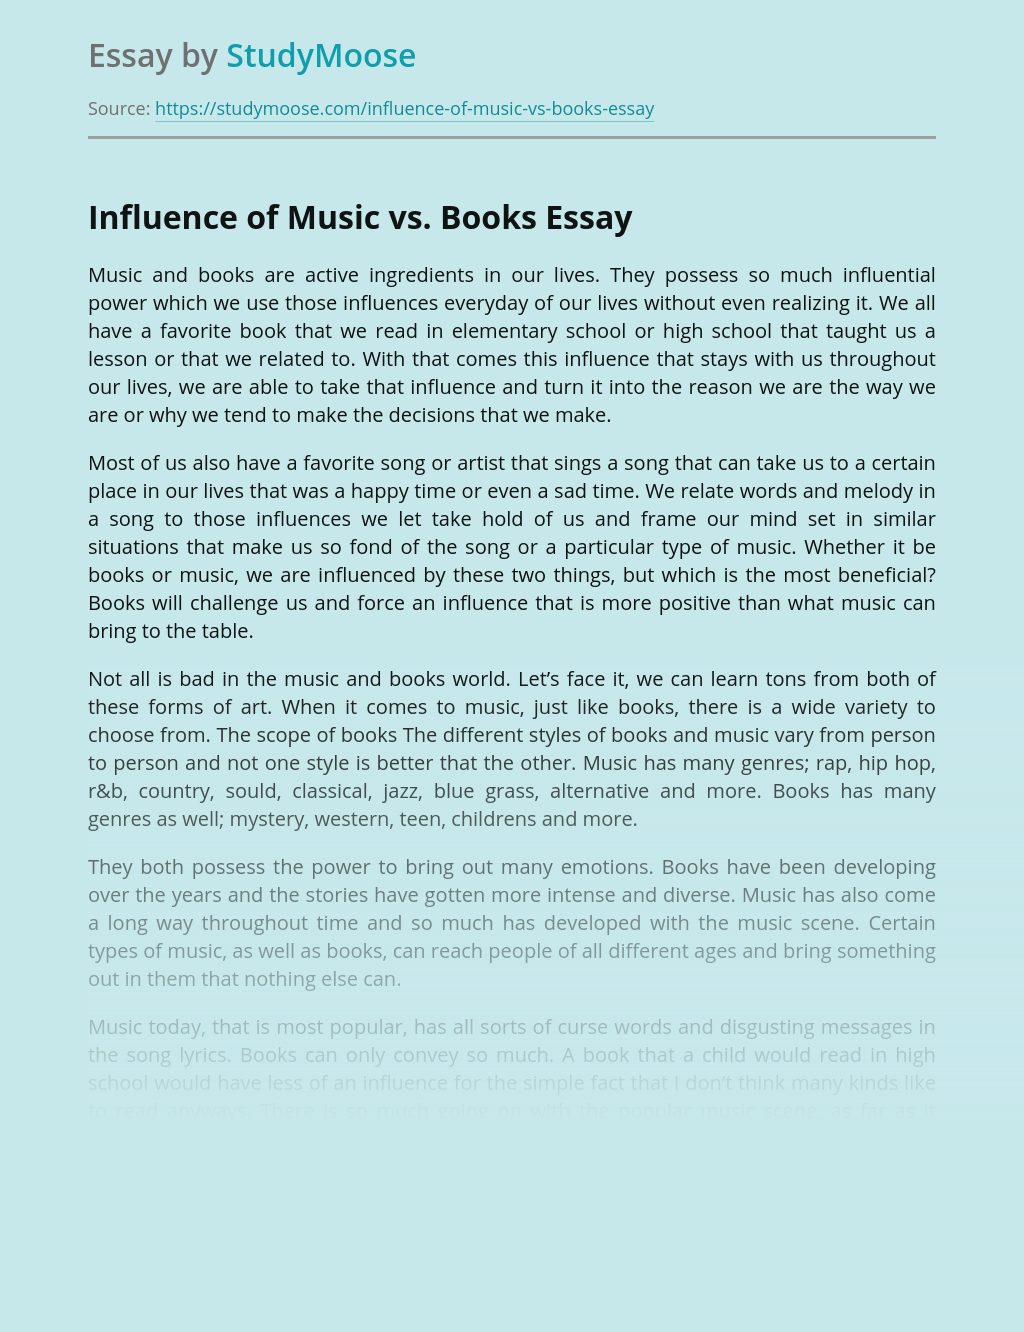 Influence of Music vs. Books